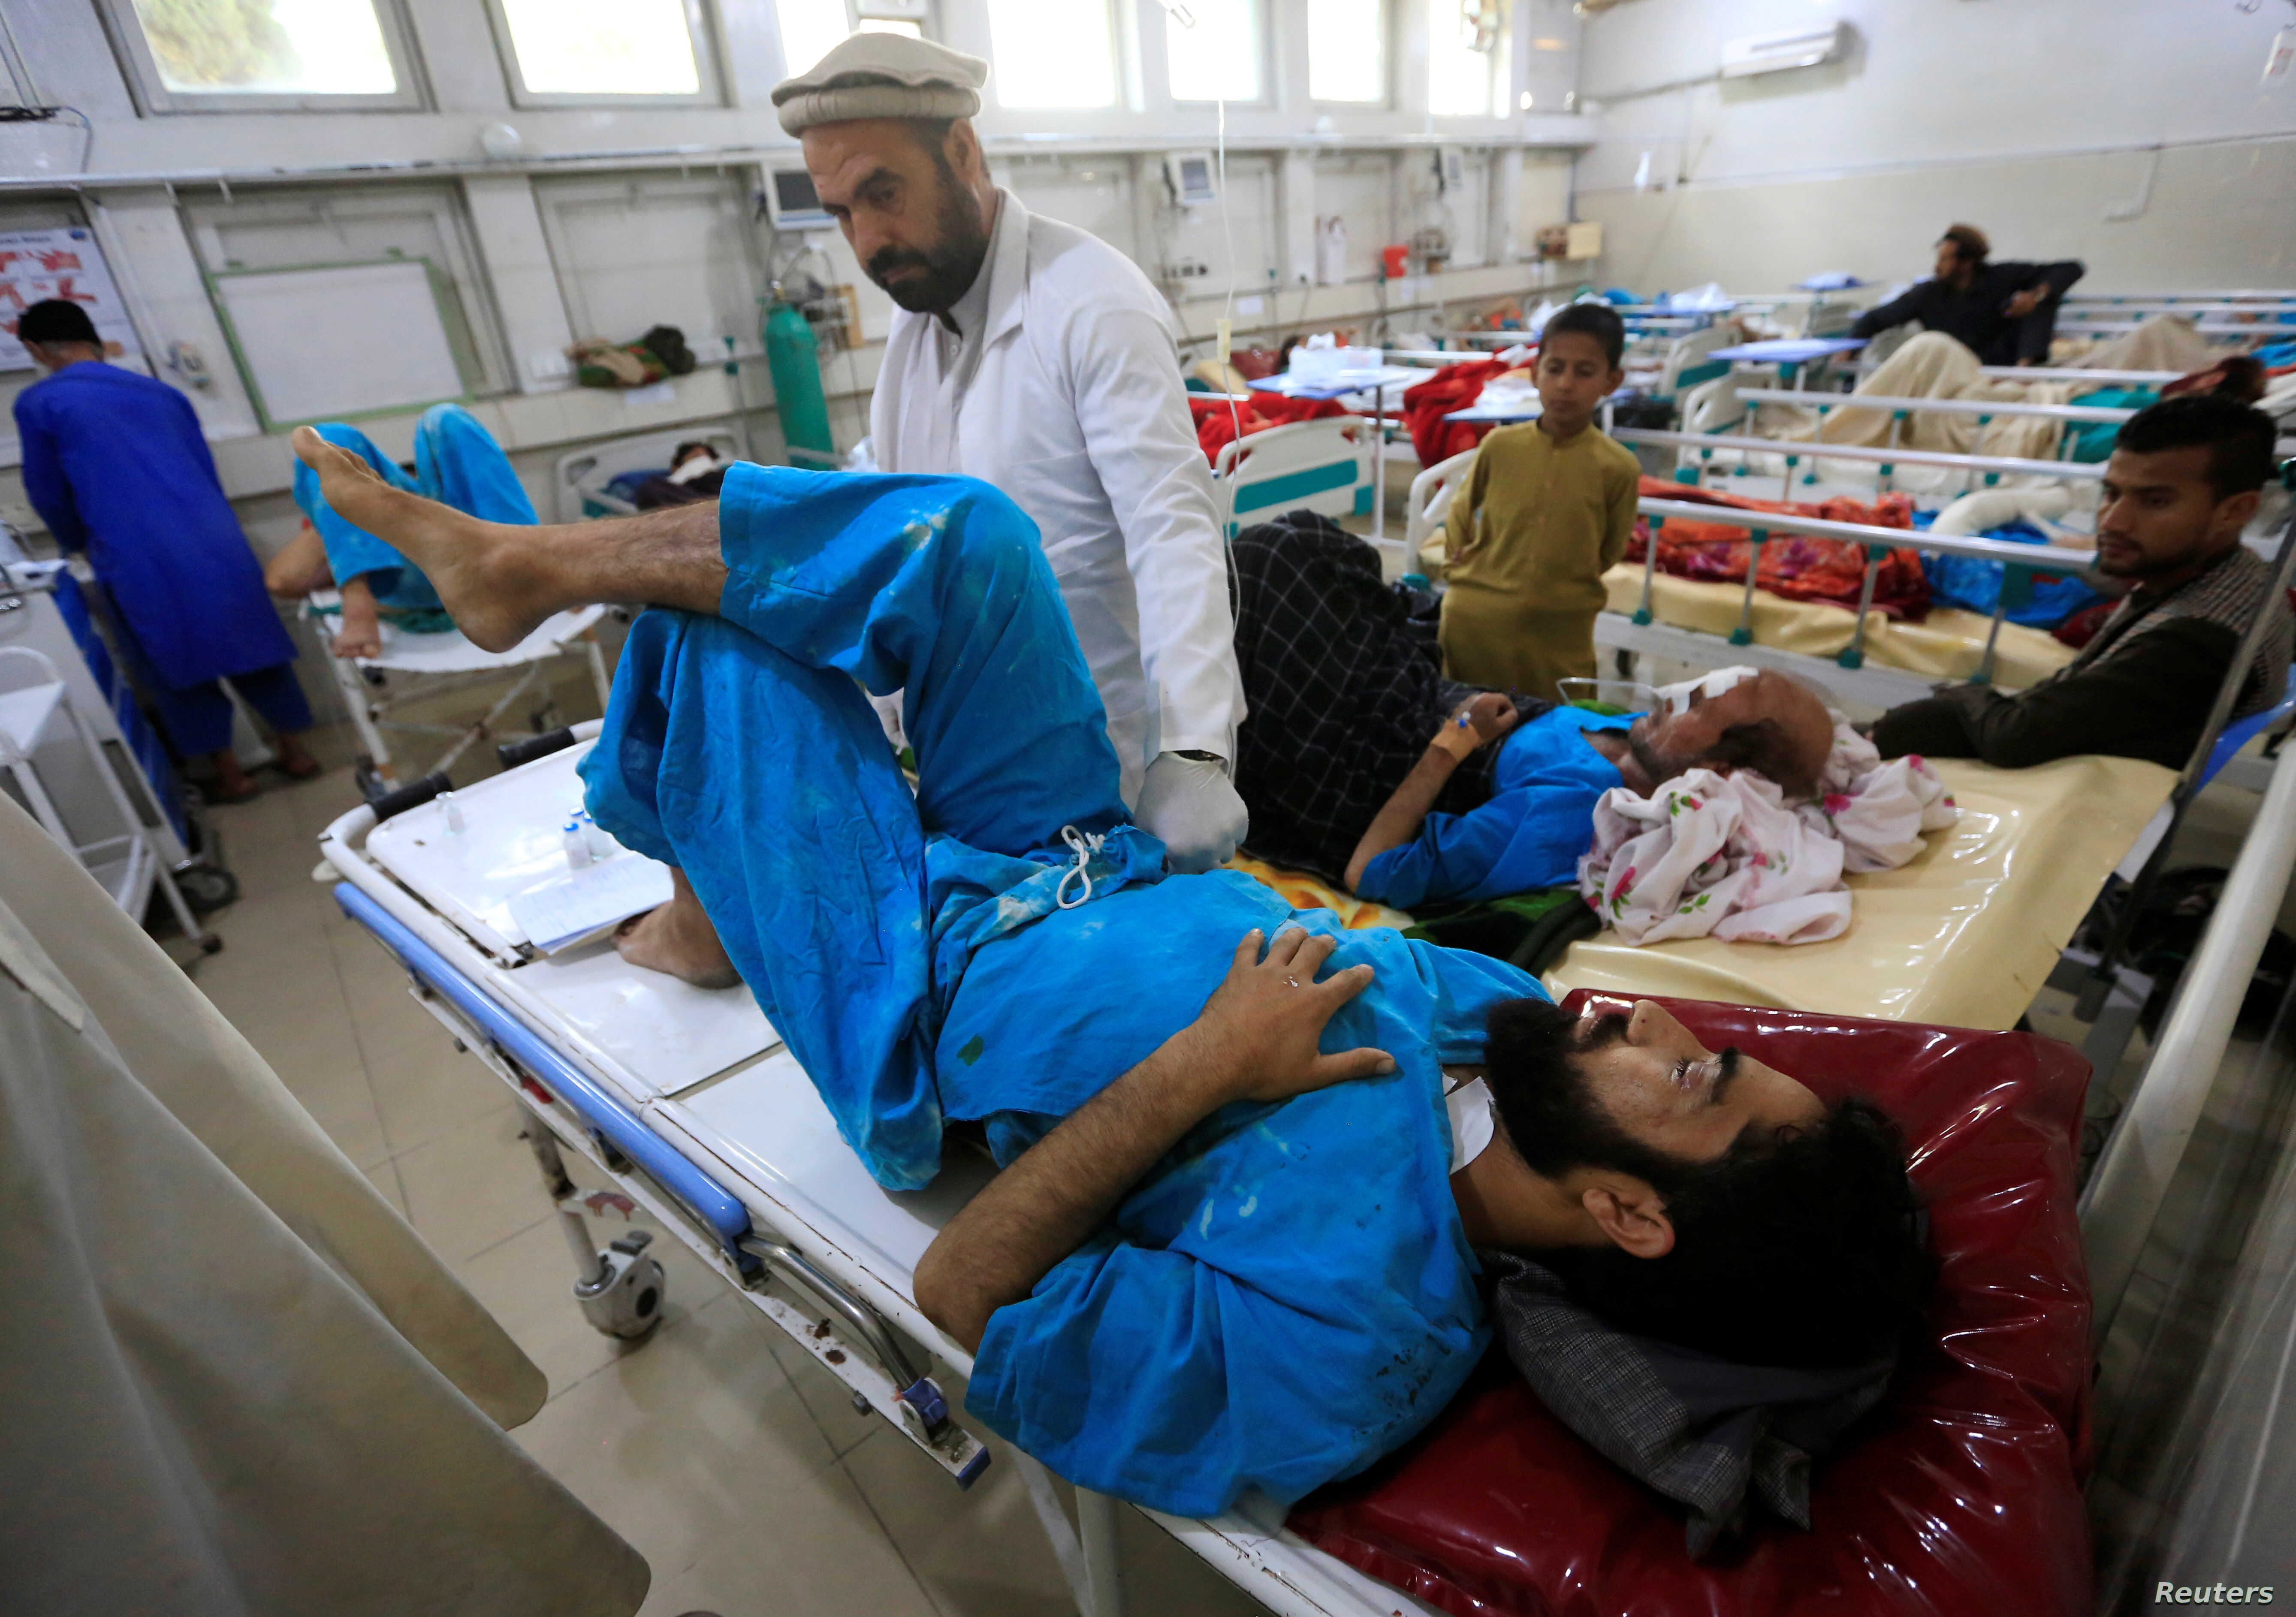 An injured man receives treatment in a hospital, after a blast in Jalalabad, Afghanistan, April 8, 2019.